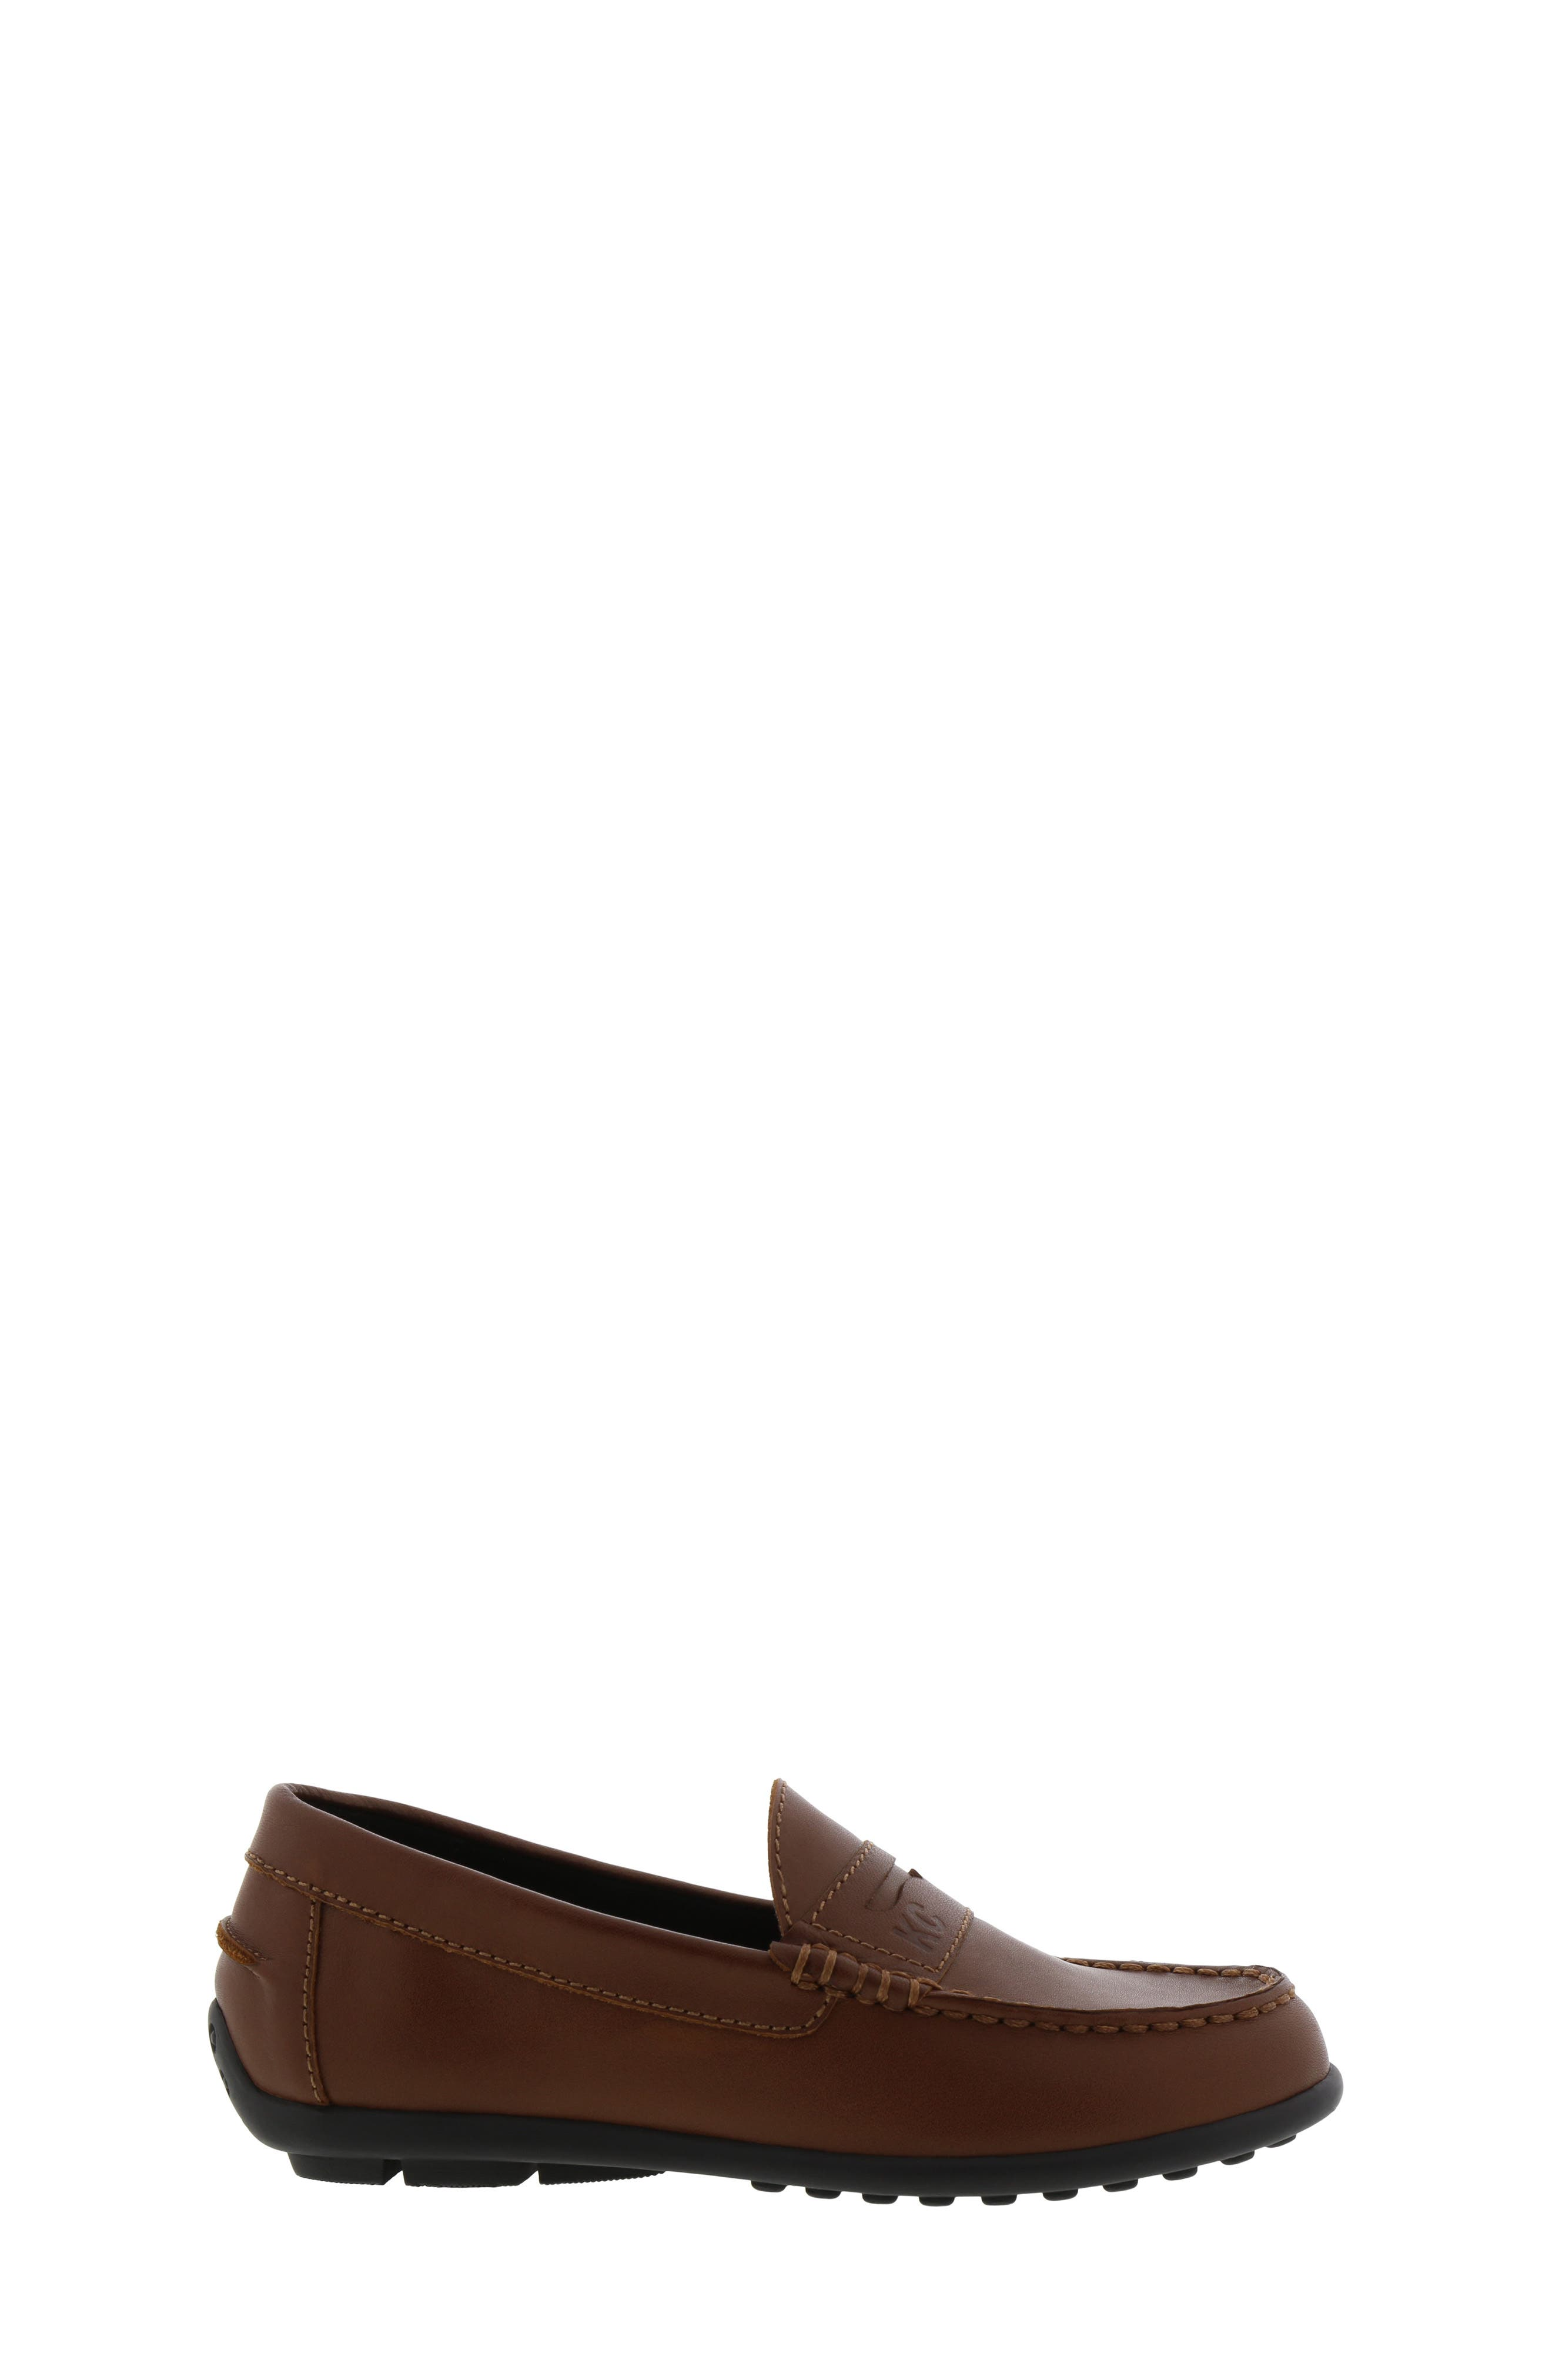 REACTION KENNETH COLE, Helio Gear Loafer, Alternate thumbnail 3, color, COGNAC